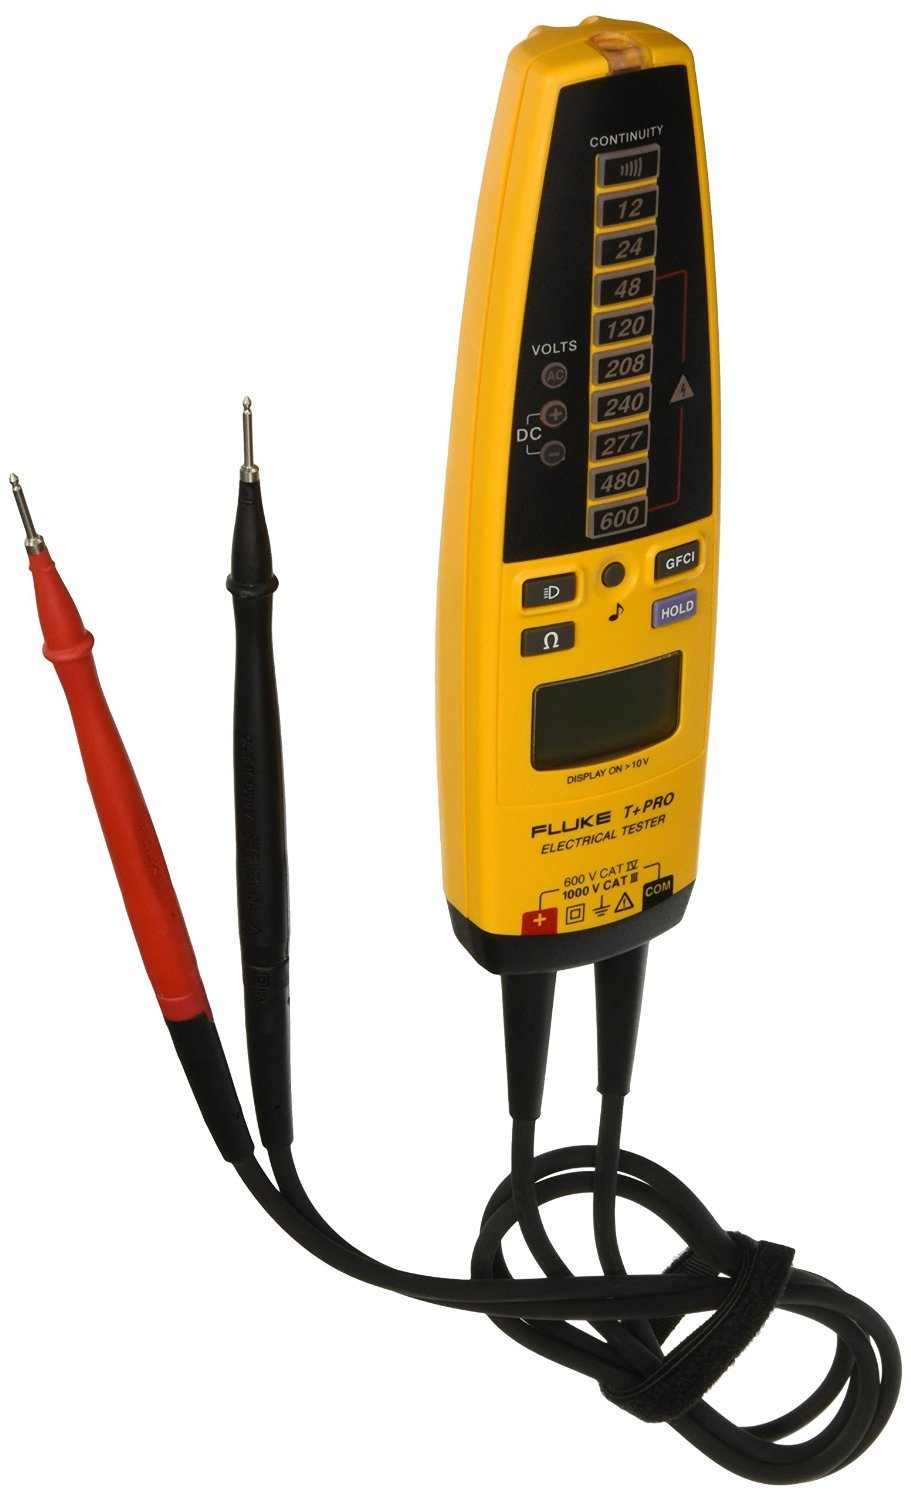 Fluke T Pro Electrical Tester With A Nist Traceable Calibration Tools Home Improvement Testers Voltage Certificate Data Industrial Scientific